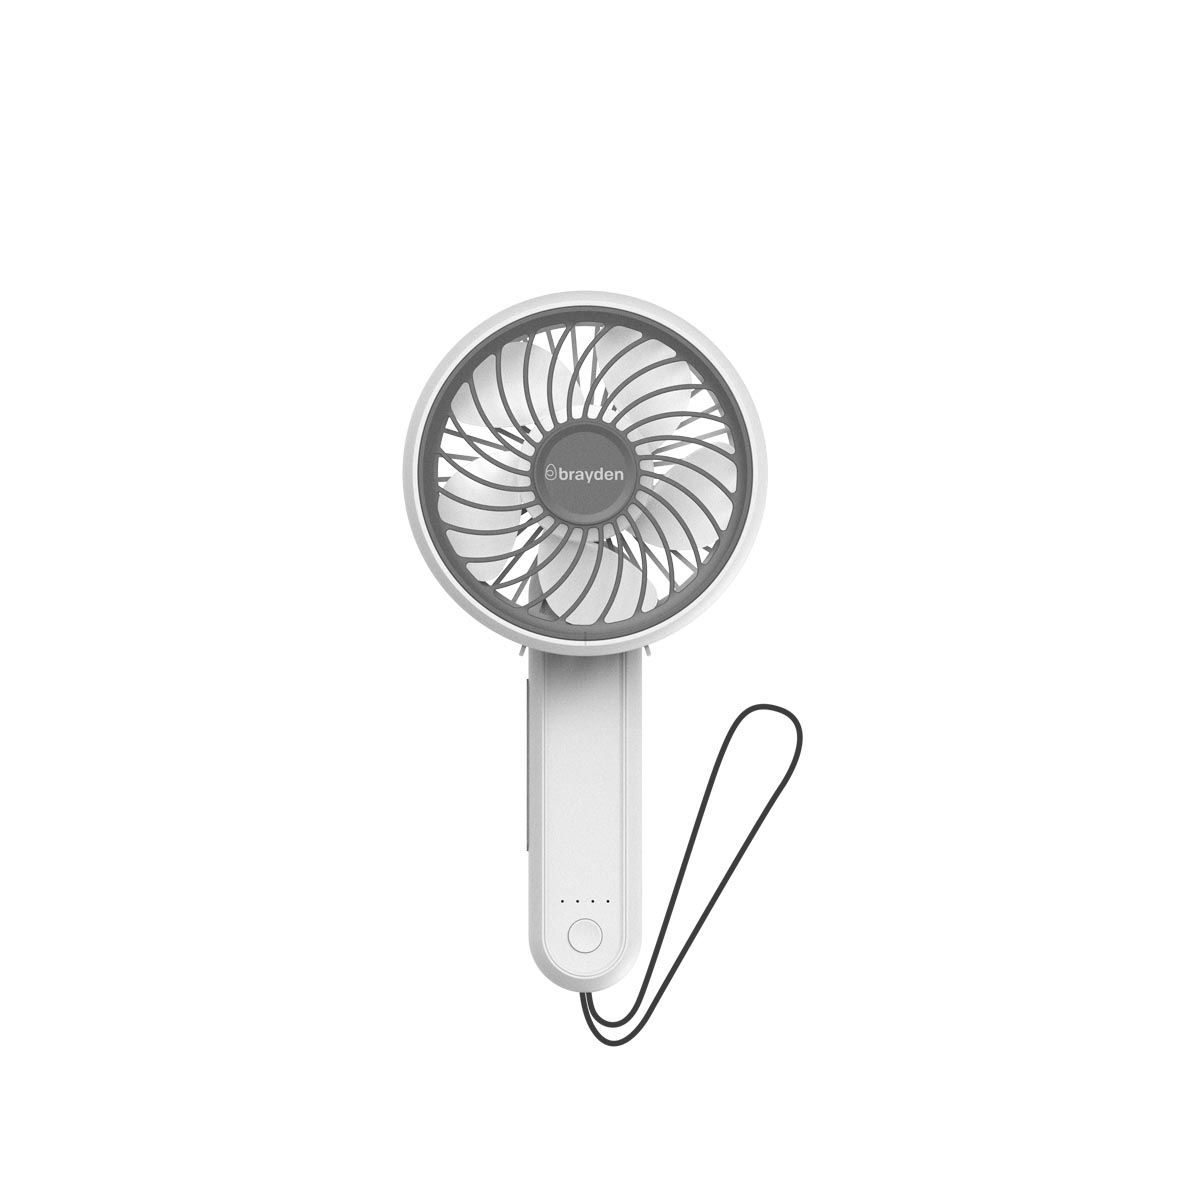 Brayden Airo F20 - Rechargeable Foldable Fan(White)